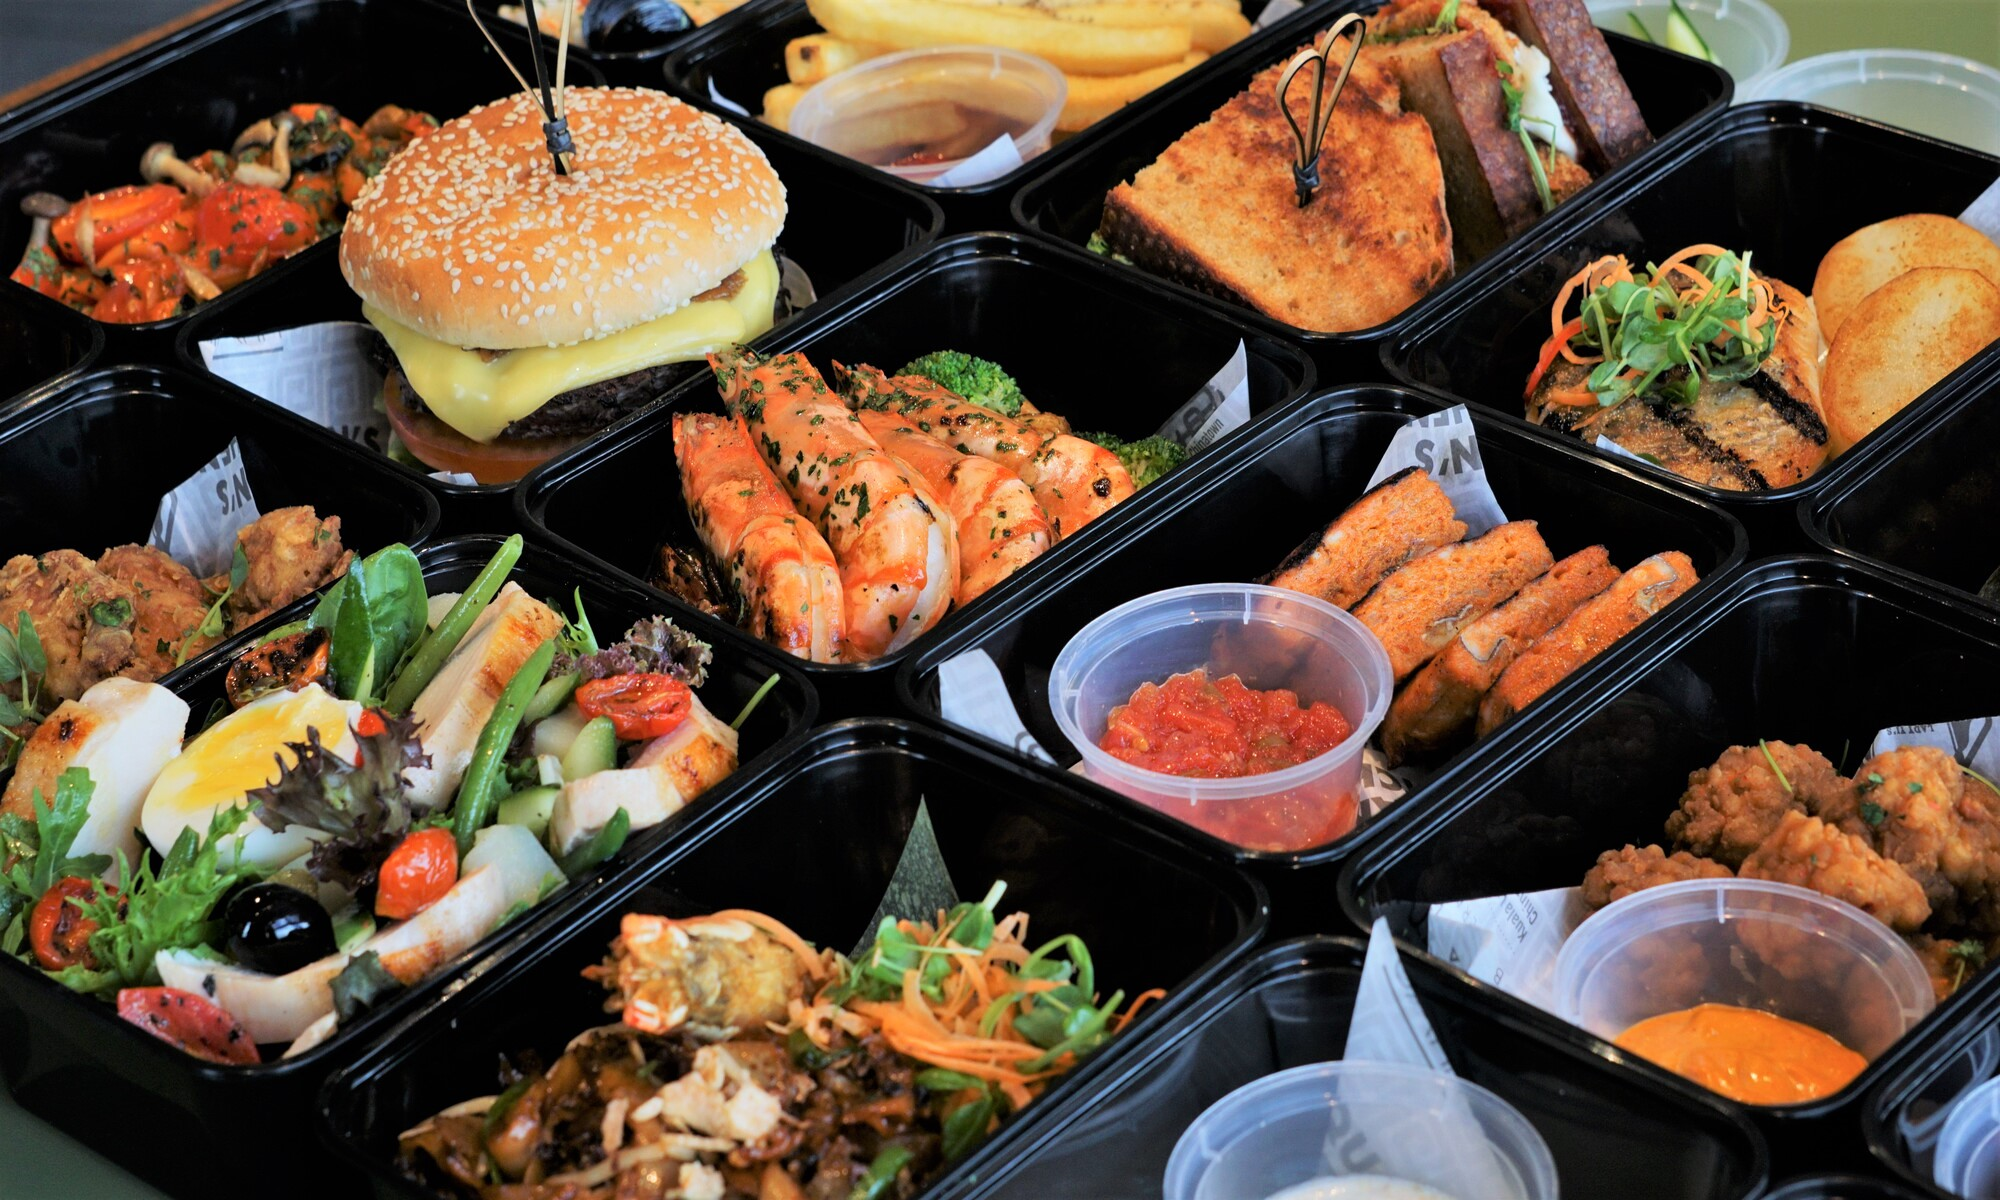 You Can Now Get Your Favourite Food From Hotels Via GrabFood